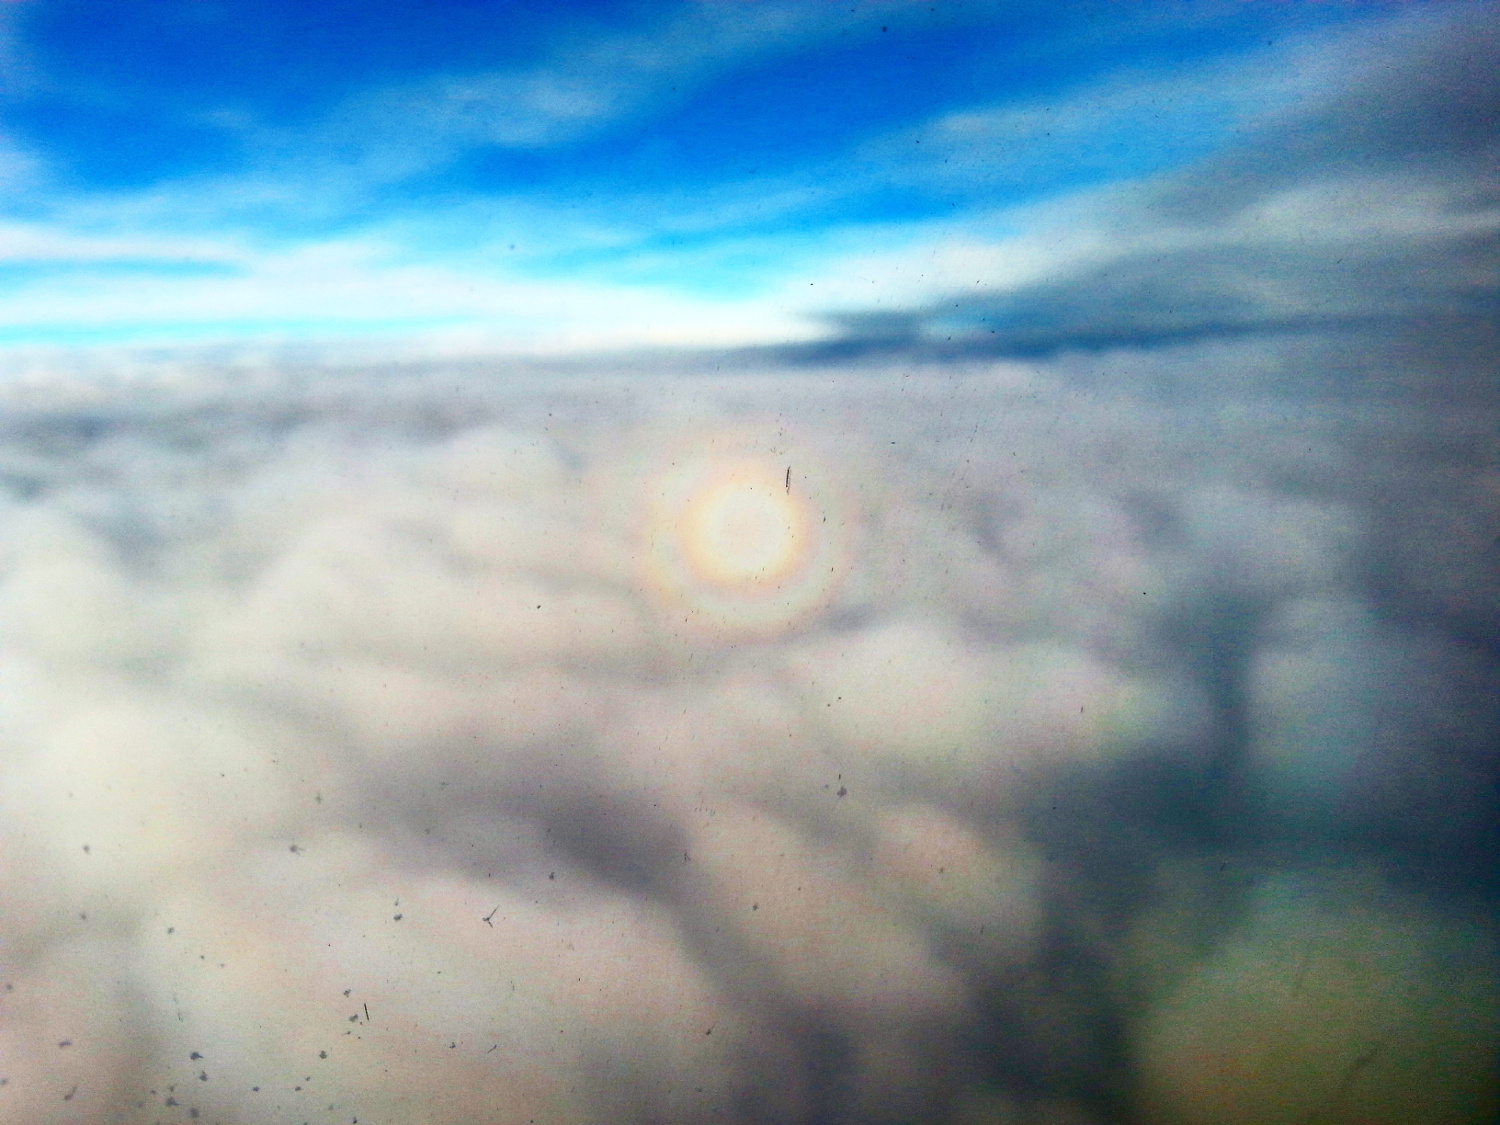 Triple circular rainbow seen from an airplane